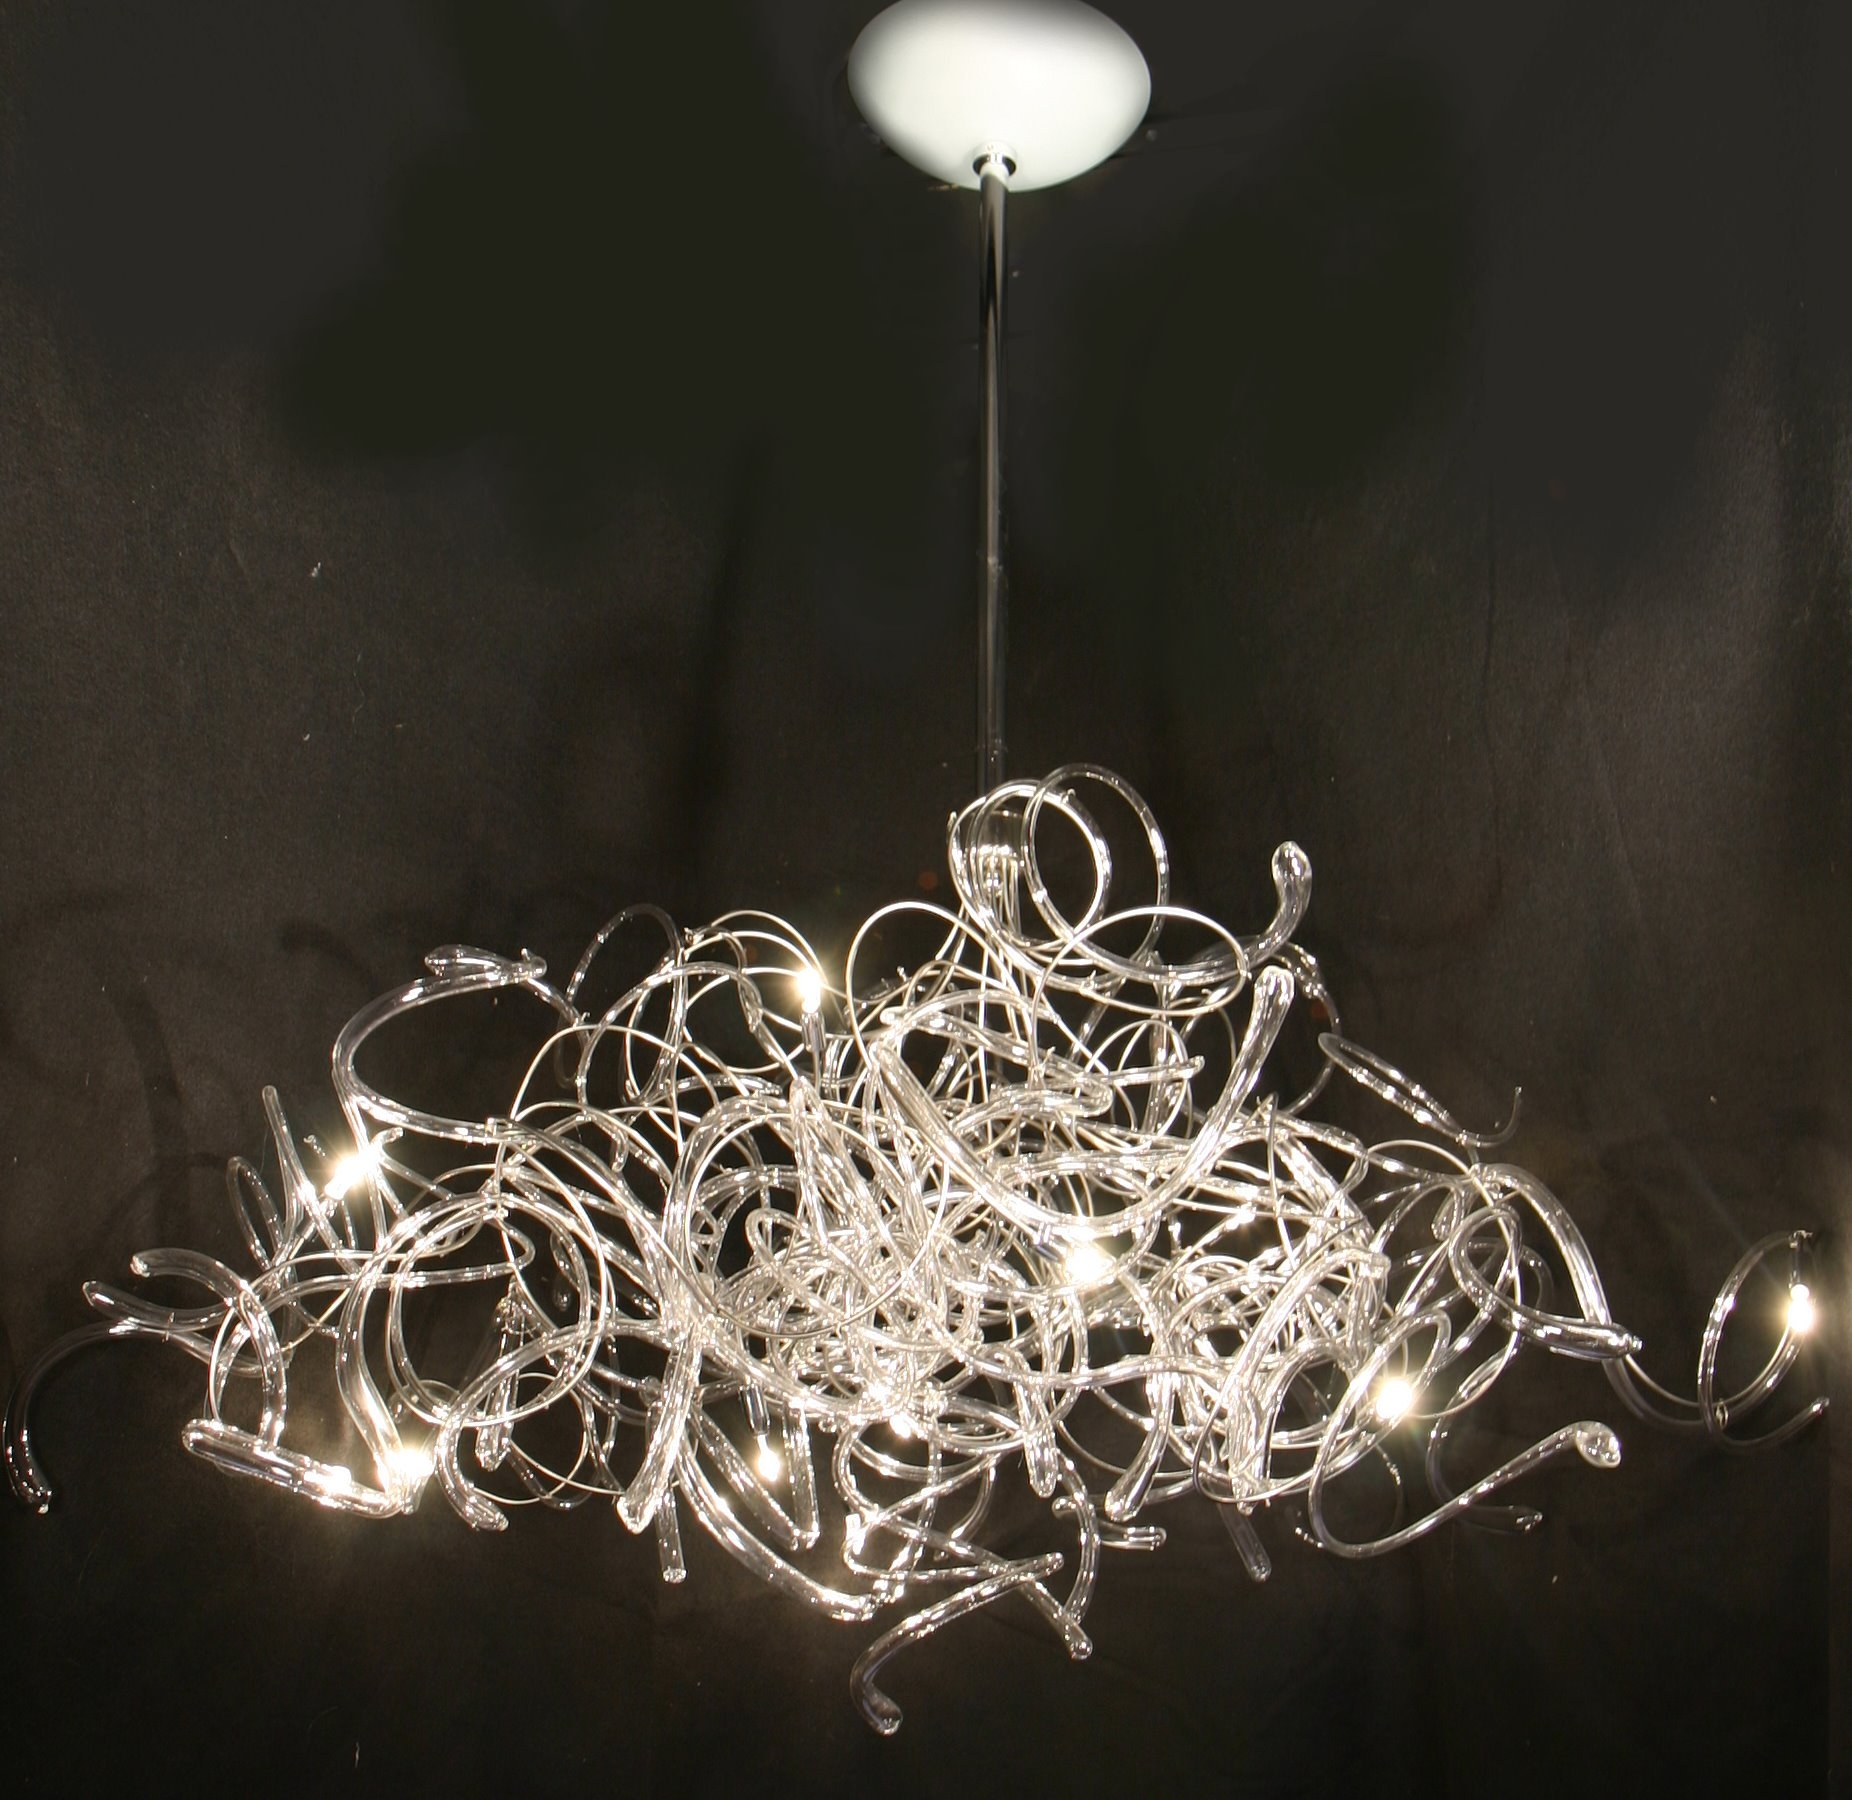 Modern Lights Chandeliers Pertaining To Modern Chandeliers (#11 of 12)